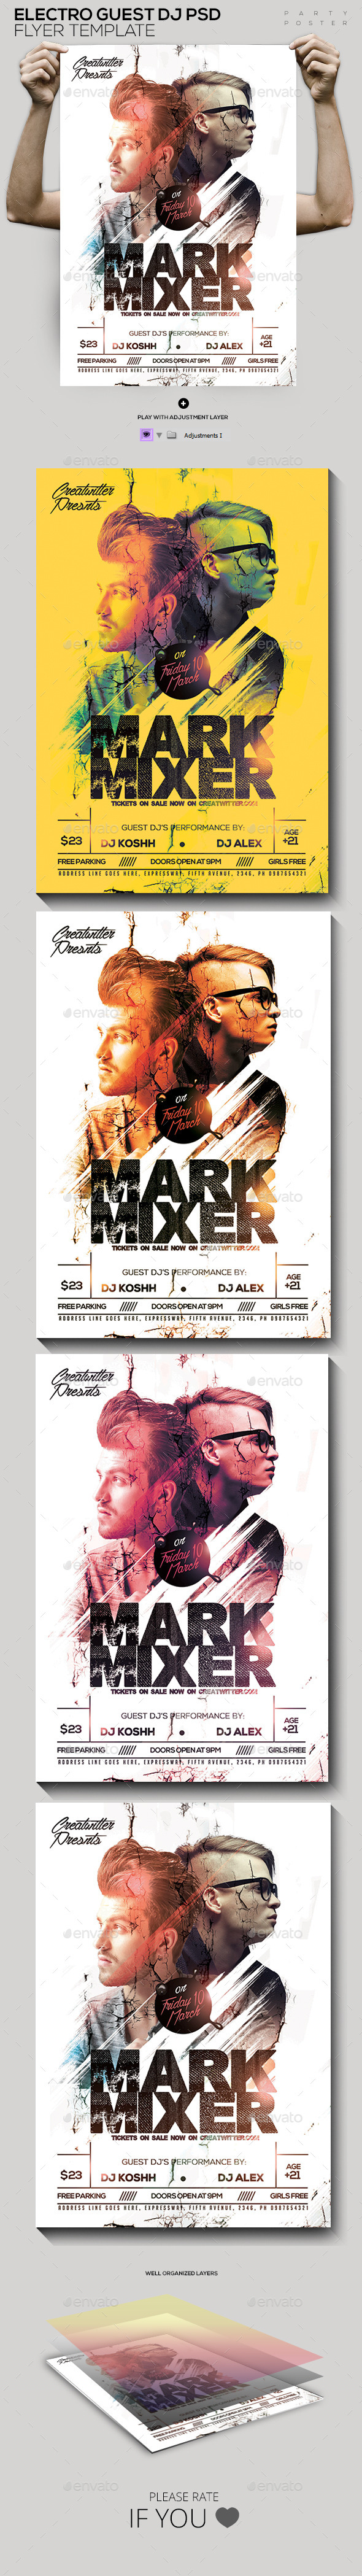 Guest DJ's PSD Poster/Flyer Template - Clubs & Parties Events